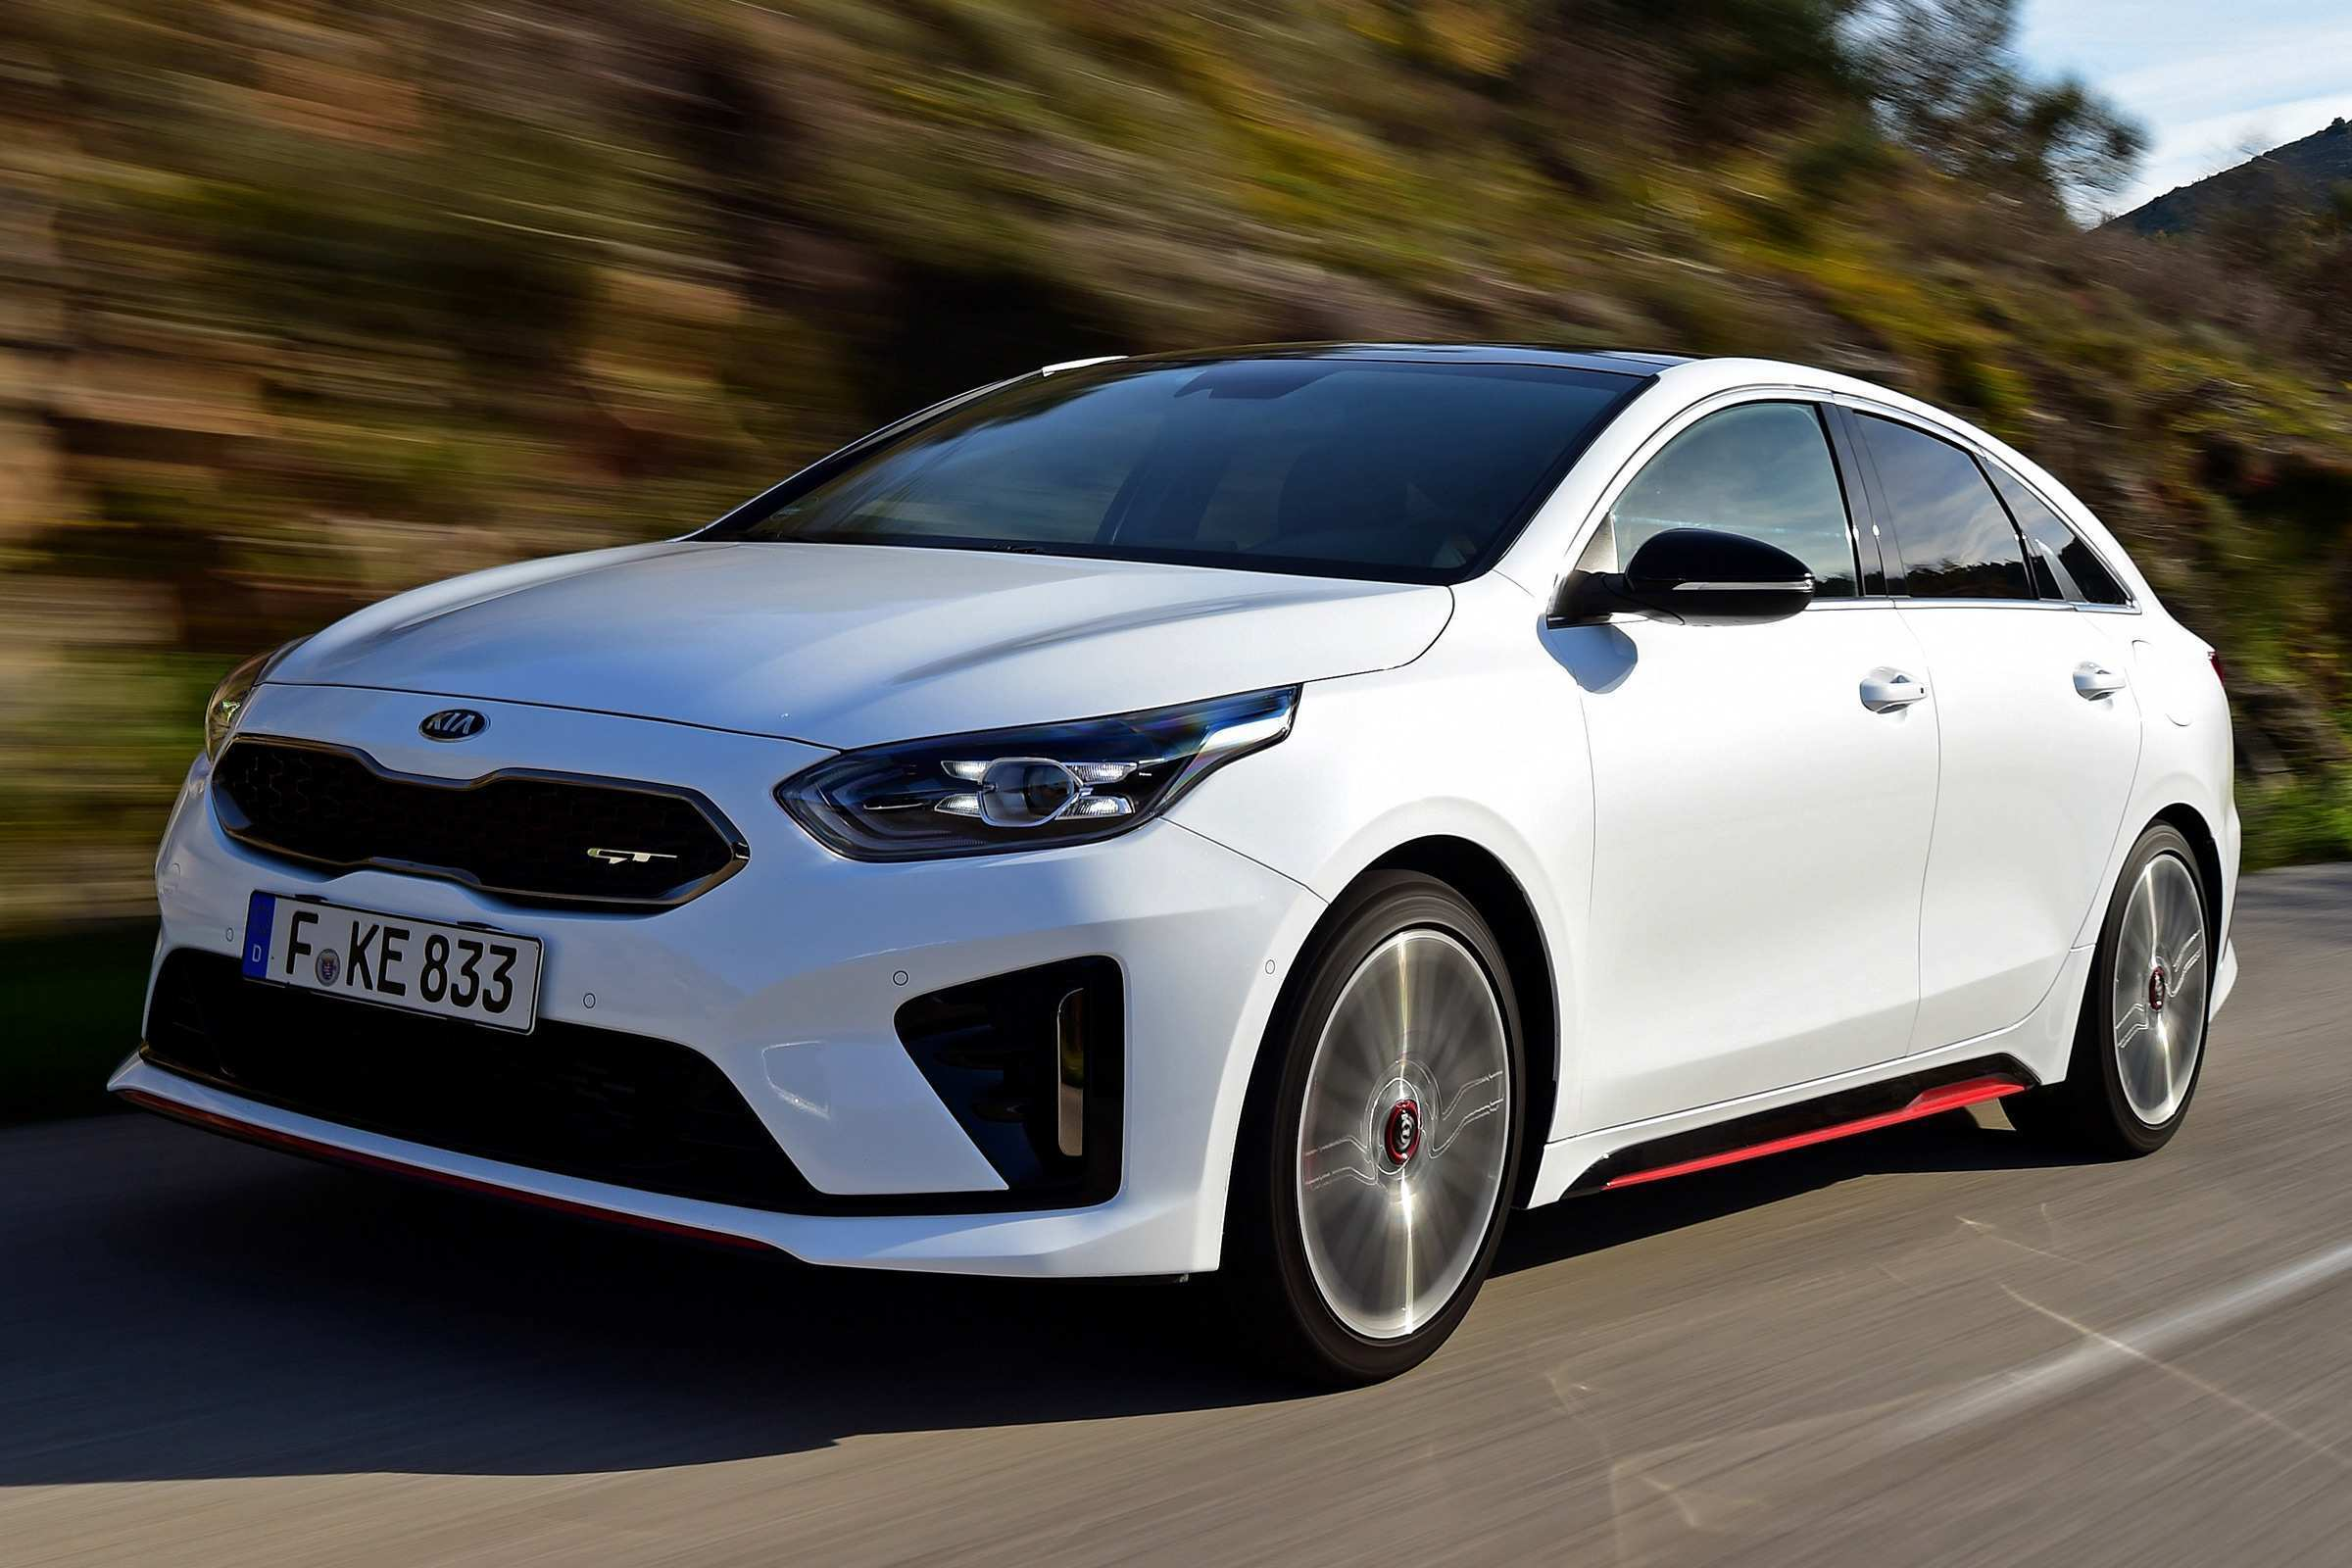 43 Gallery of Kia Ceed Gt 2019 Spy Shoot by Kia Ceed Gt 2019